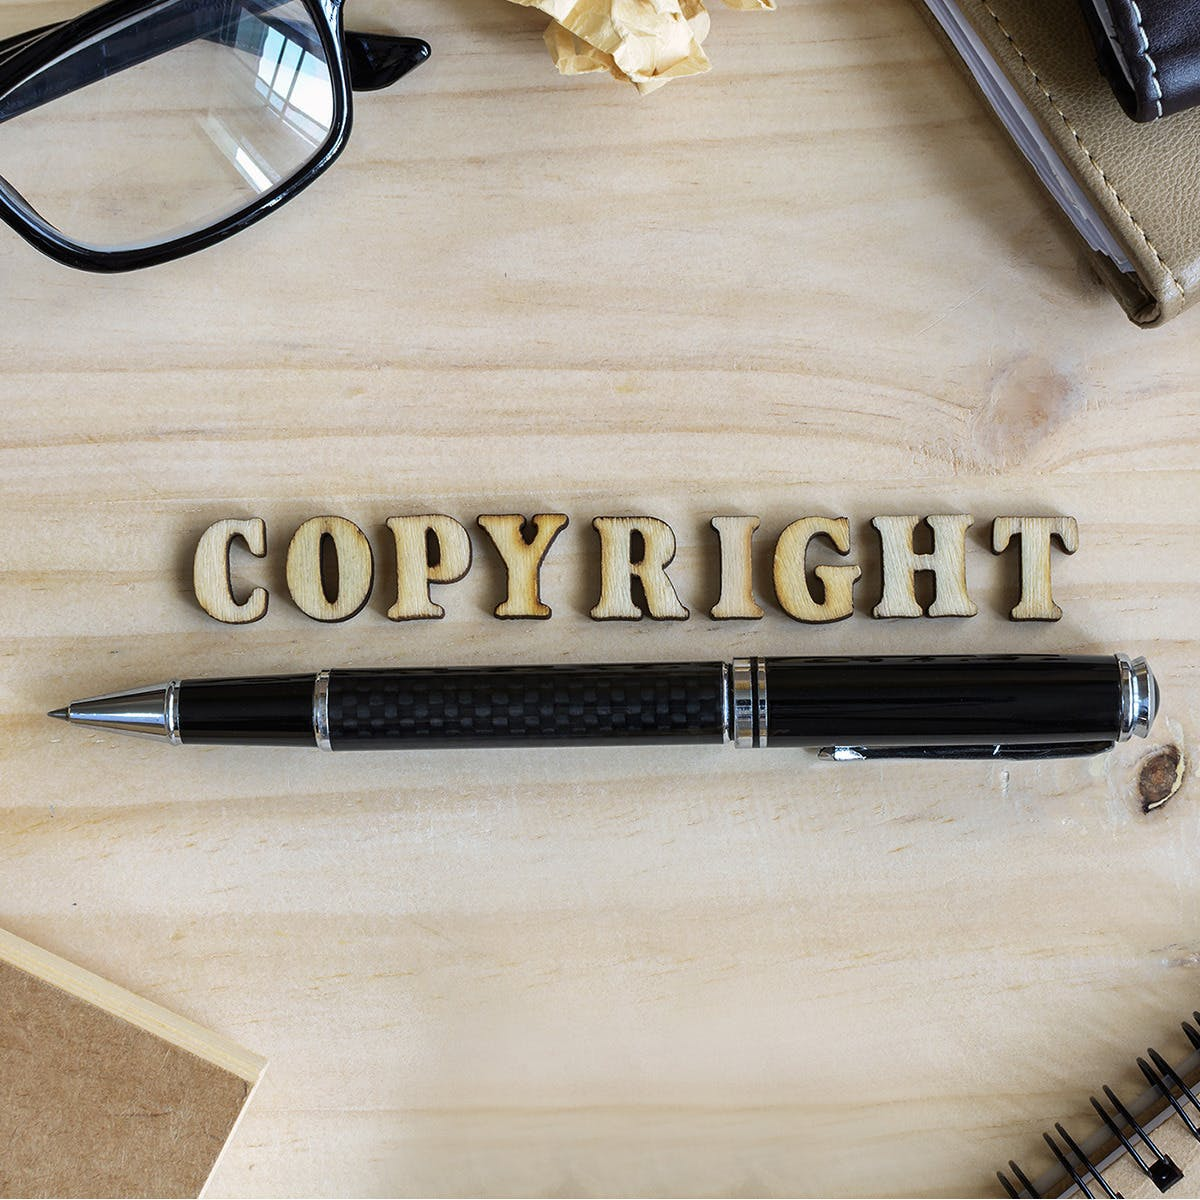 Can Google's New Semantic Search Keep Within Copyright Laws?